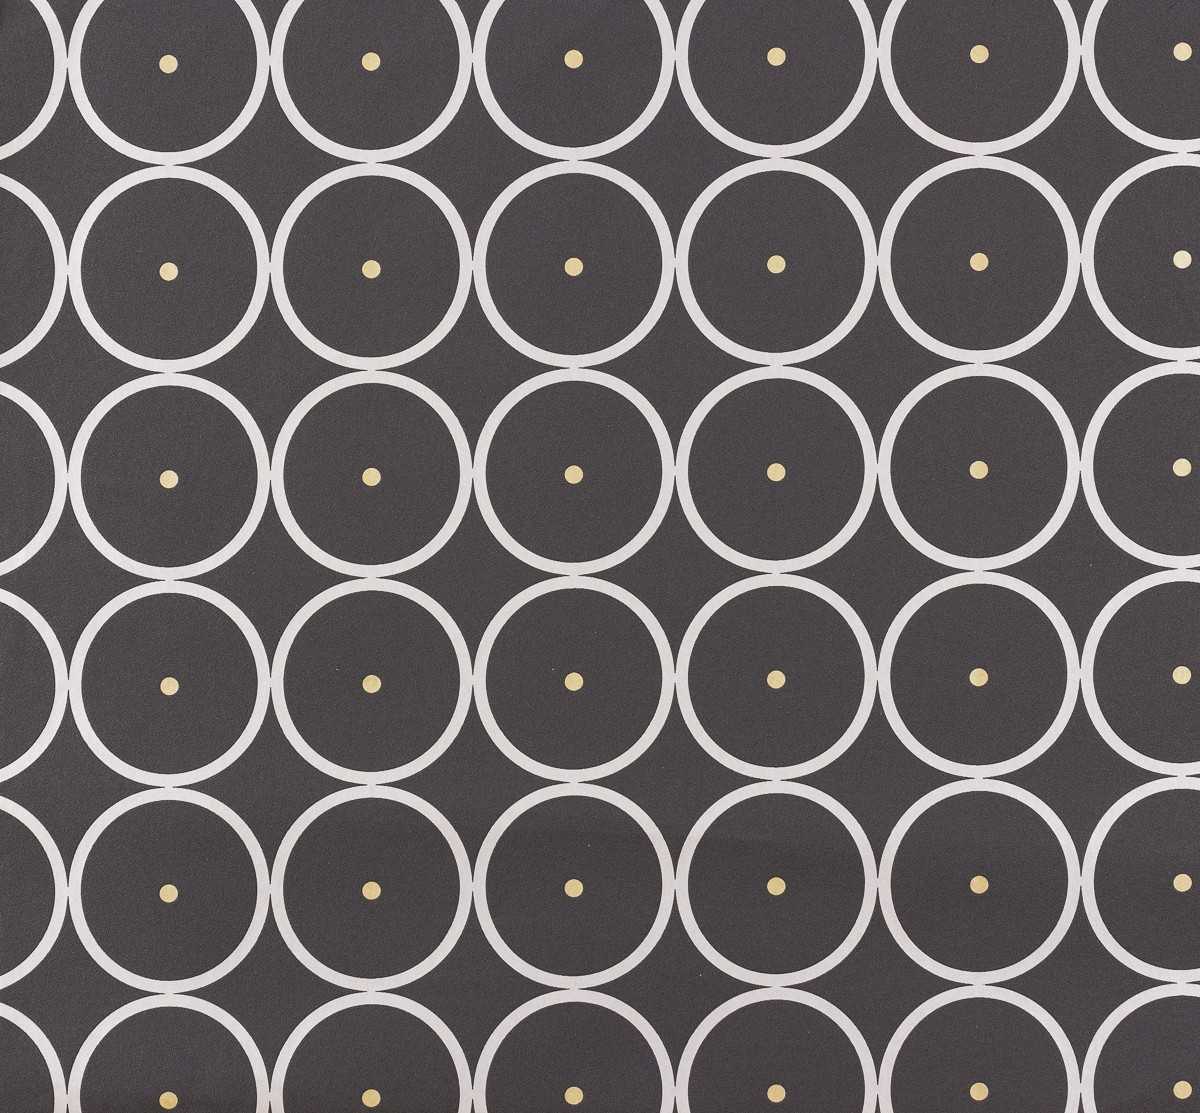 Gray Circles Wallpaper Circles Anthracite Grey